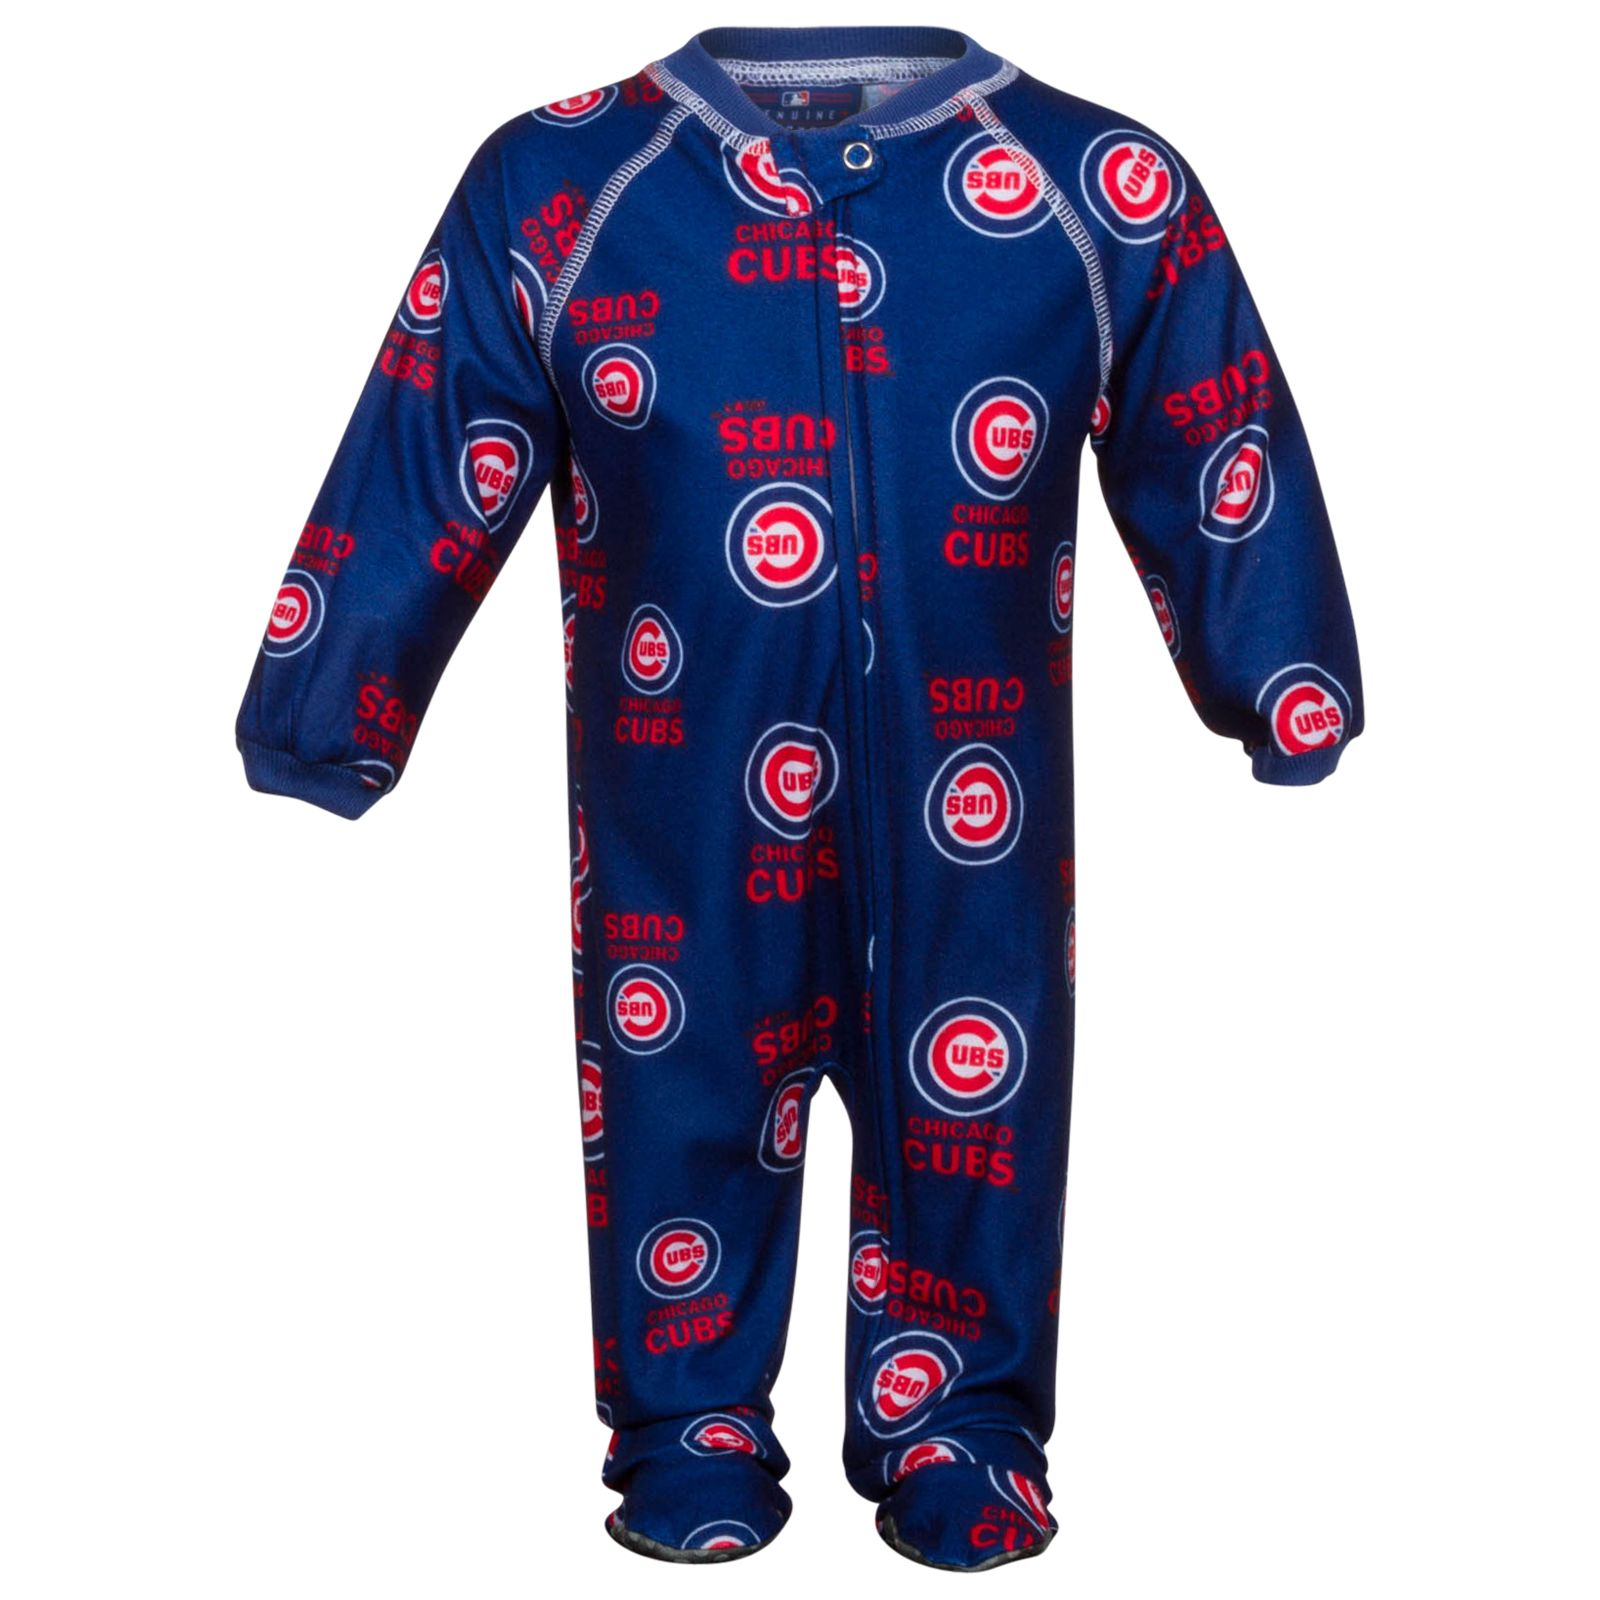 e06ed5906 Chicago Cubs Infant Full-Body Onesie with Bullseye Pattern by Genuine Stuff  #Chicago #Cubs #ChicagoCubs